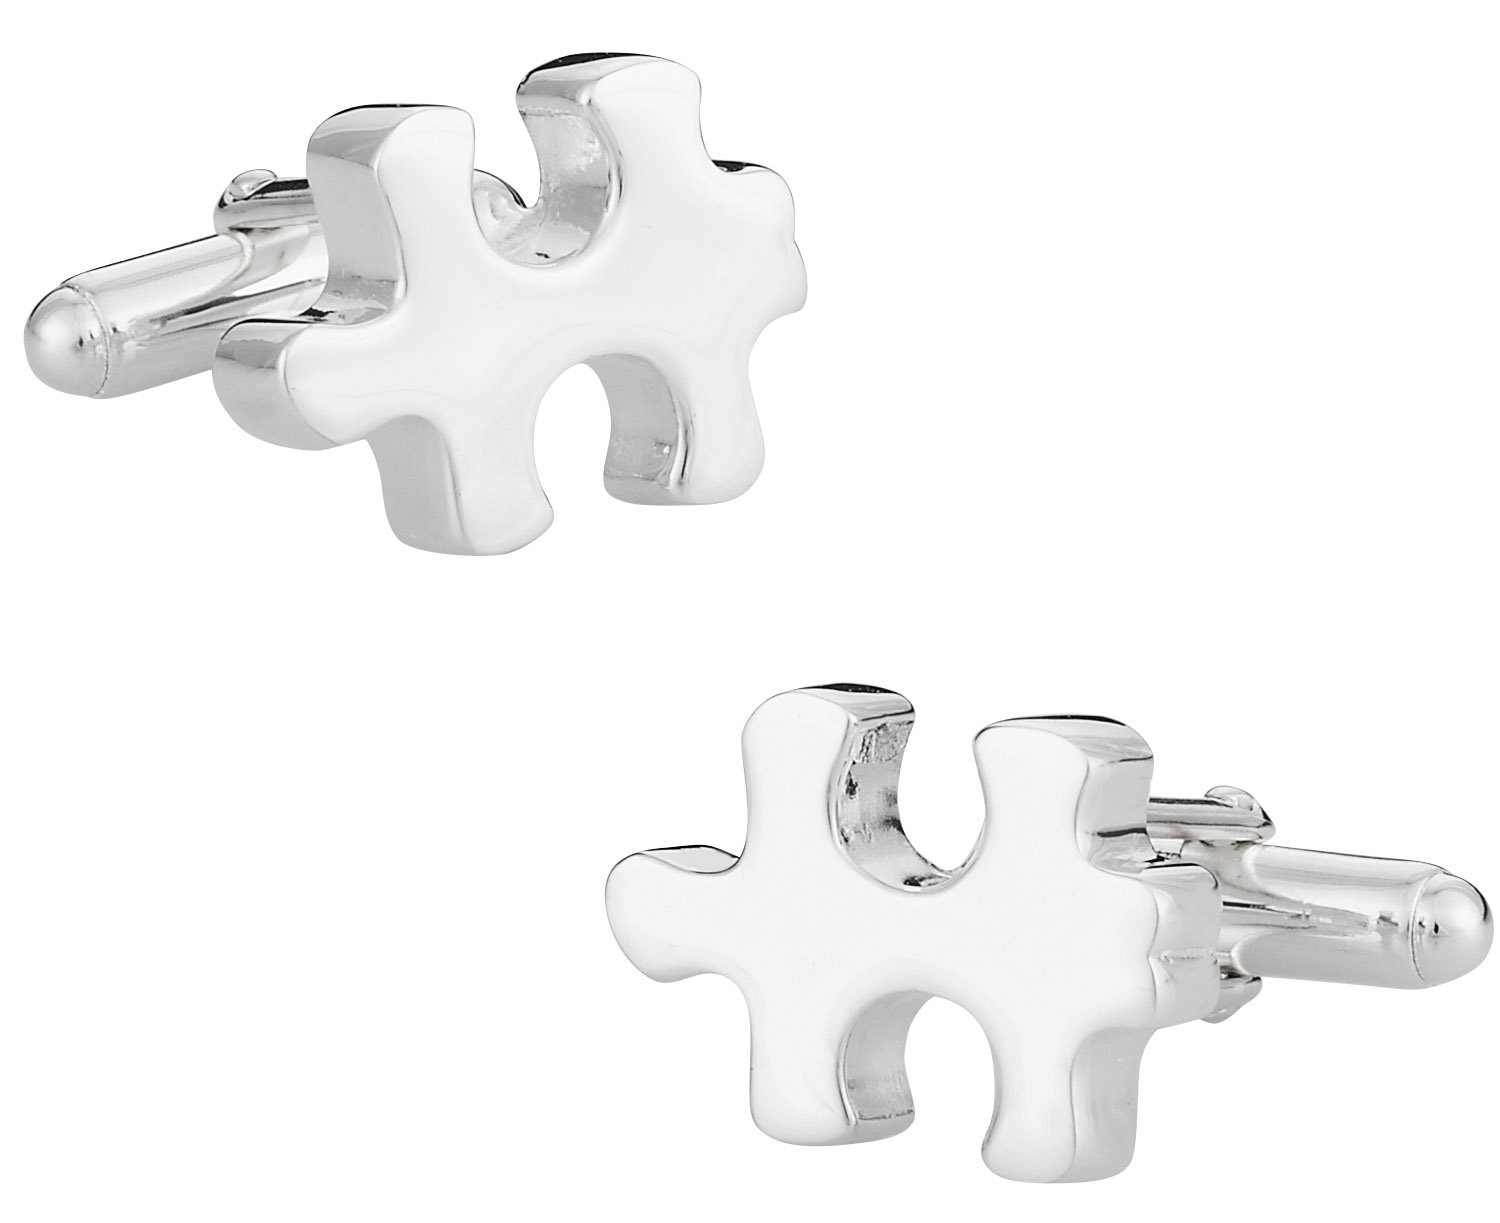 925 Sterling Silver Puzzle Piece Cufflinks by Cuff-Daddy by Cuff-Daddy